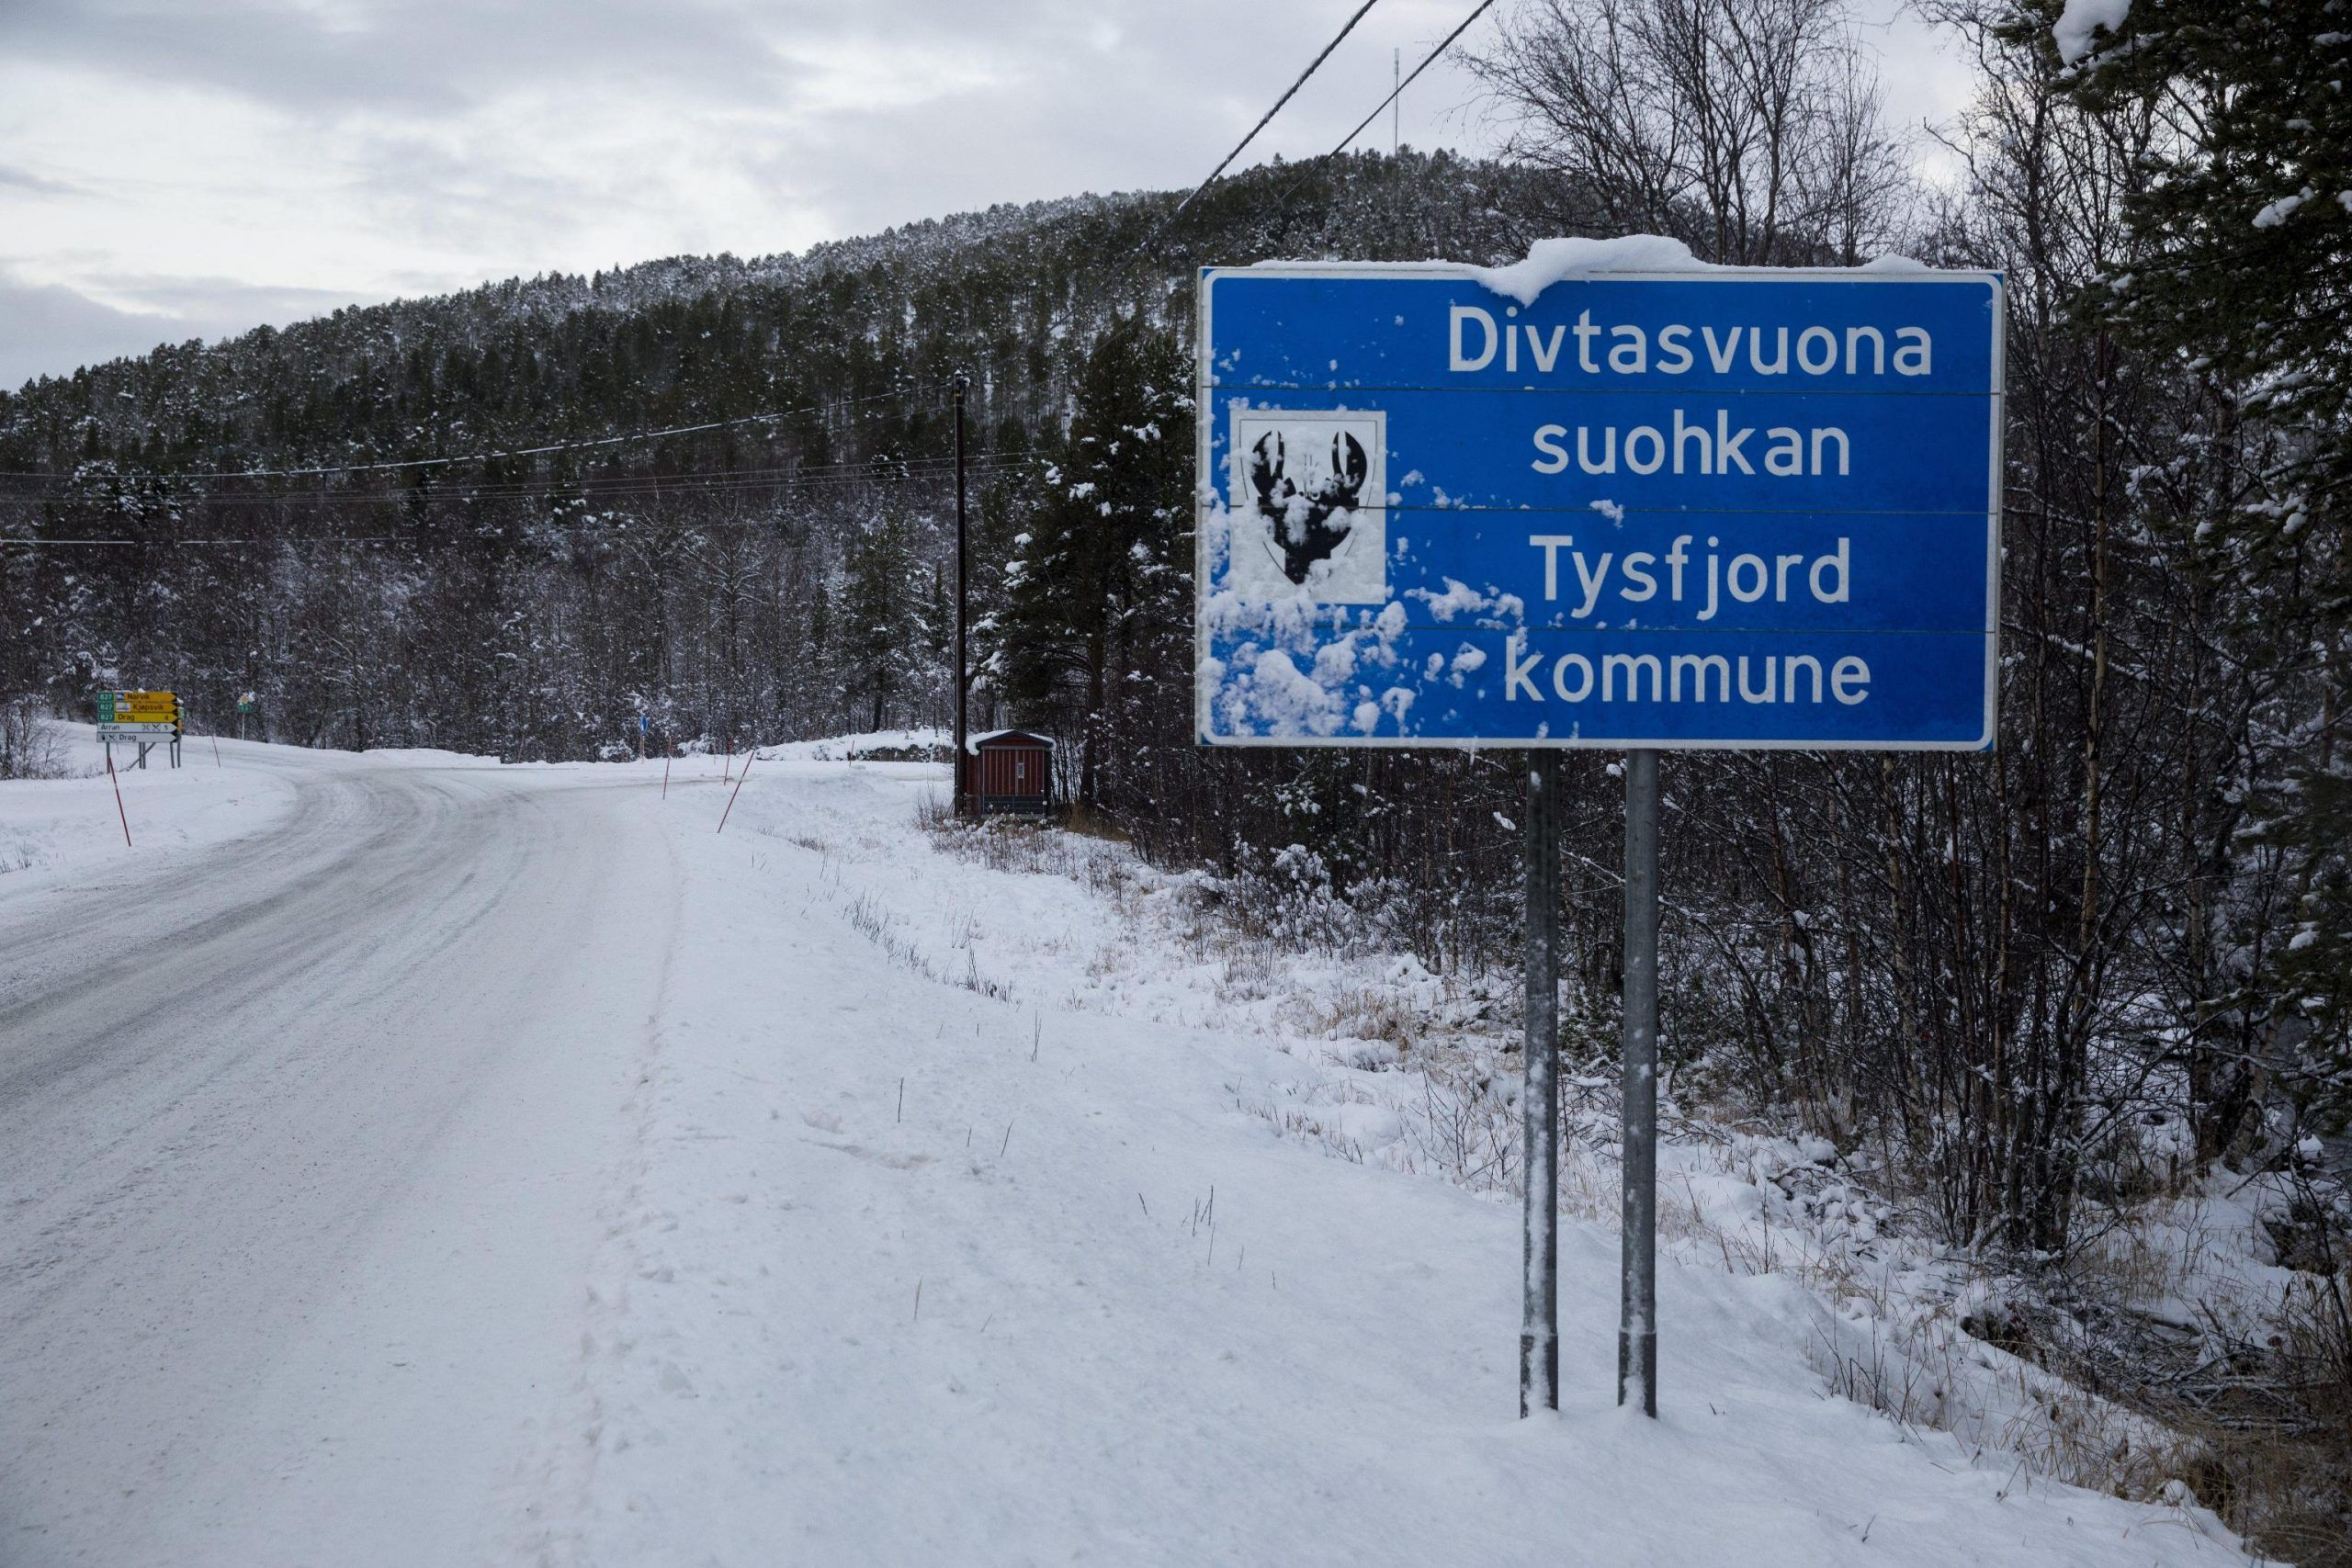 151 sexual abuse cases revealed related to Tysfjord in northern Norway